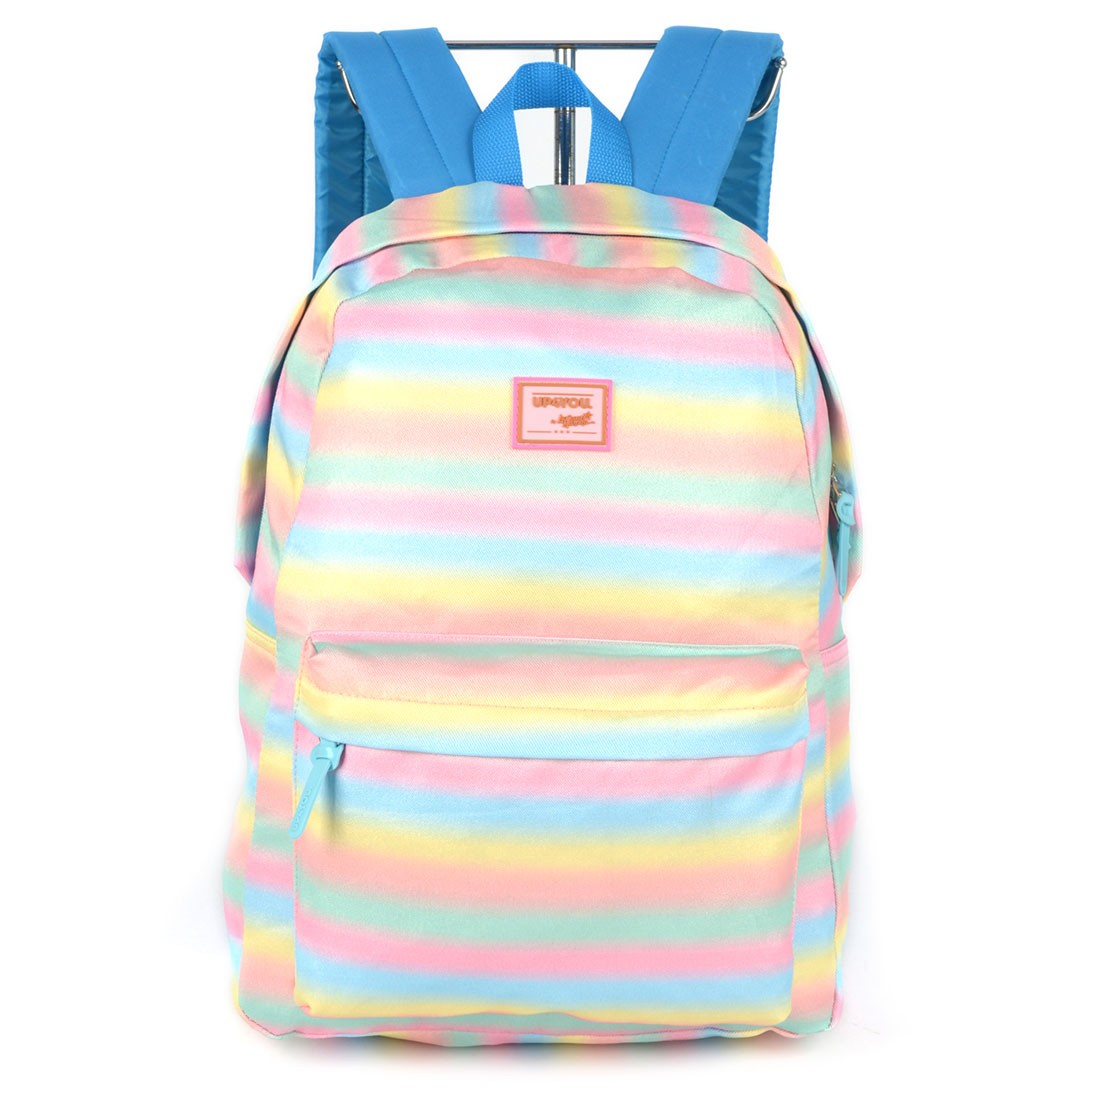 Mochila Escolar Larissa Manoela Up4You